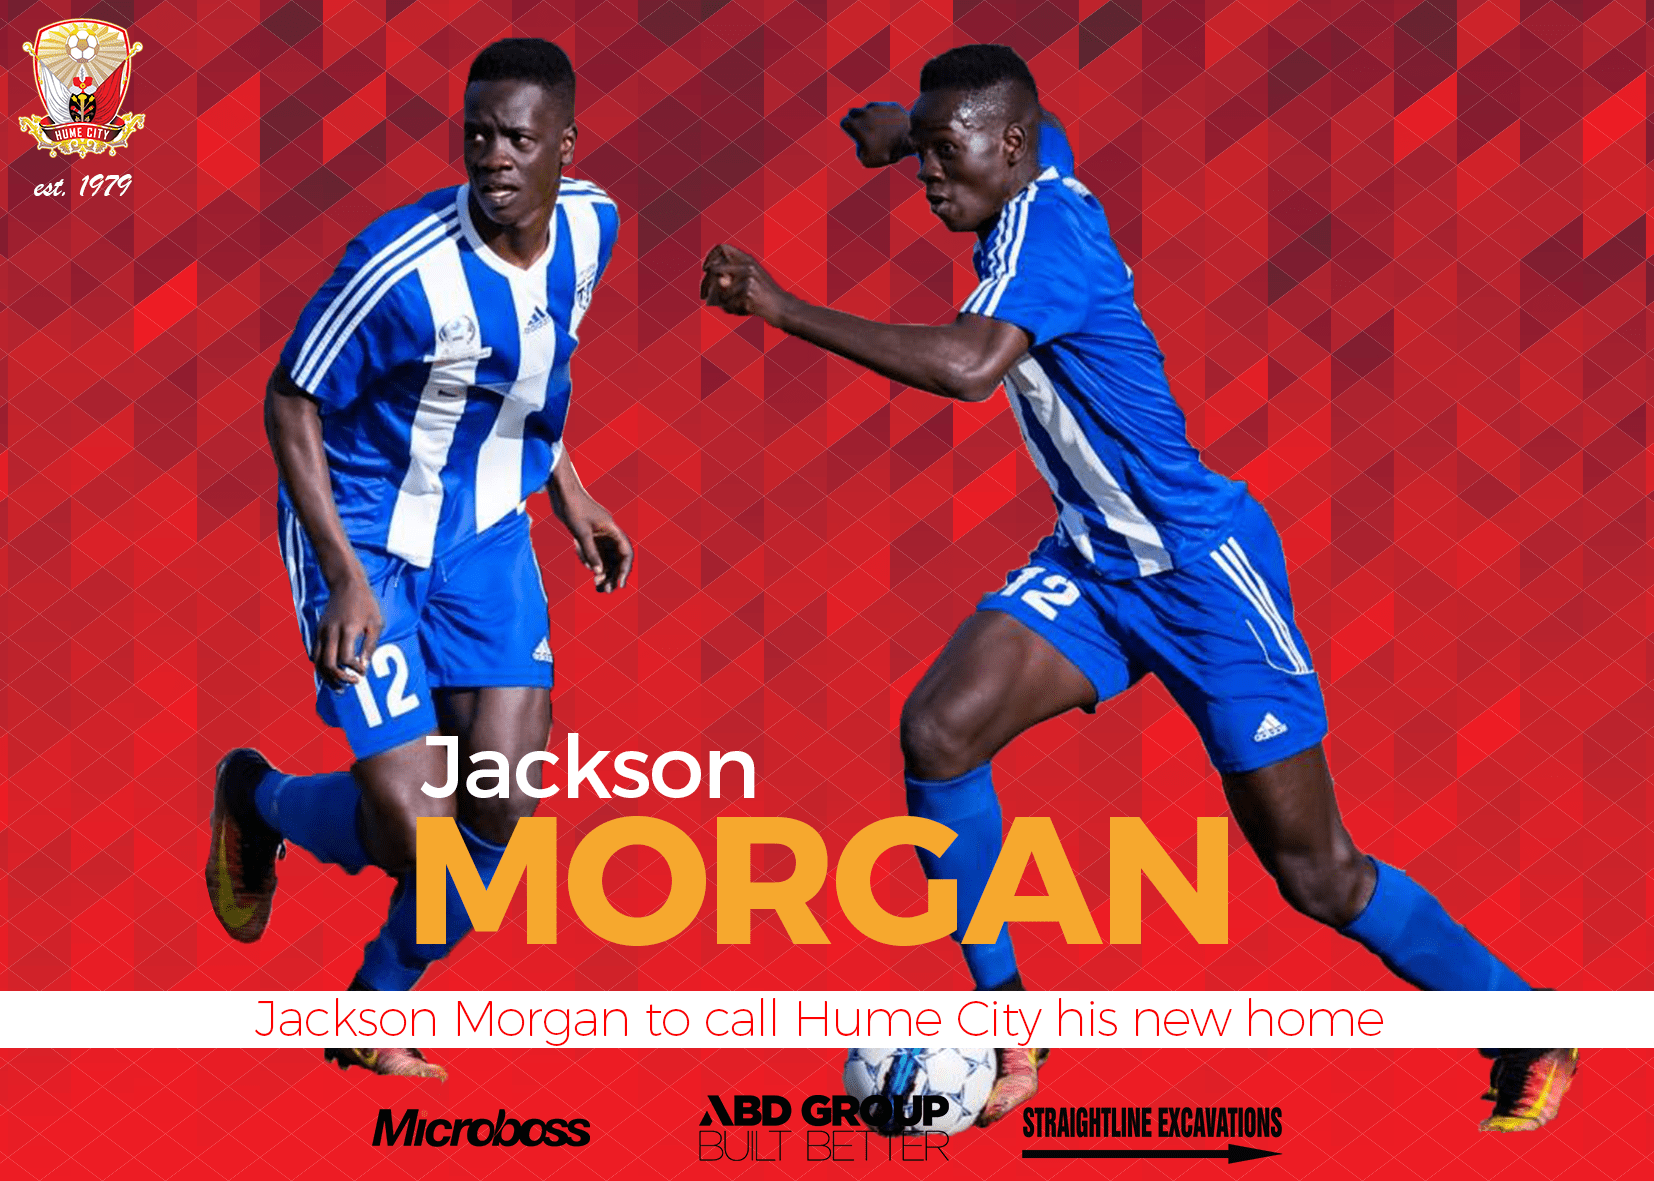 Jackson Morgan Makes Hume City Move